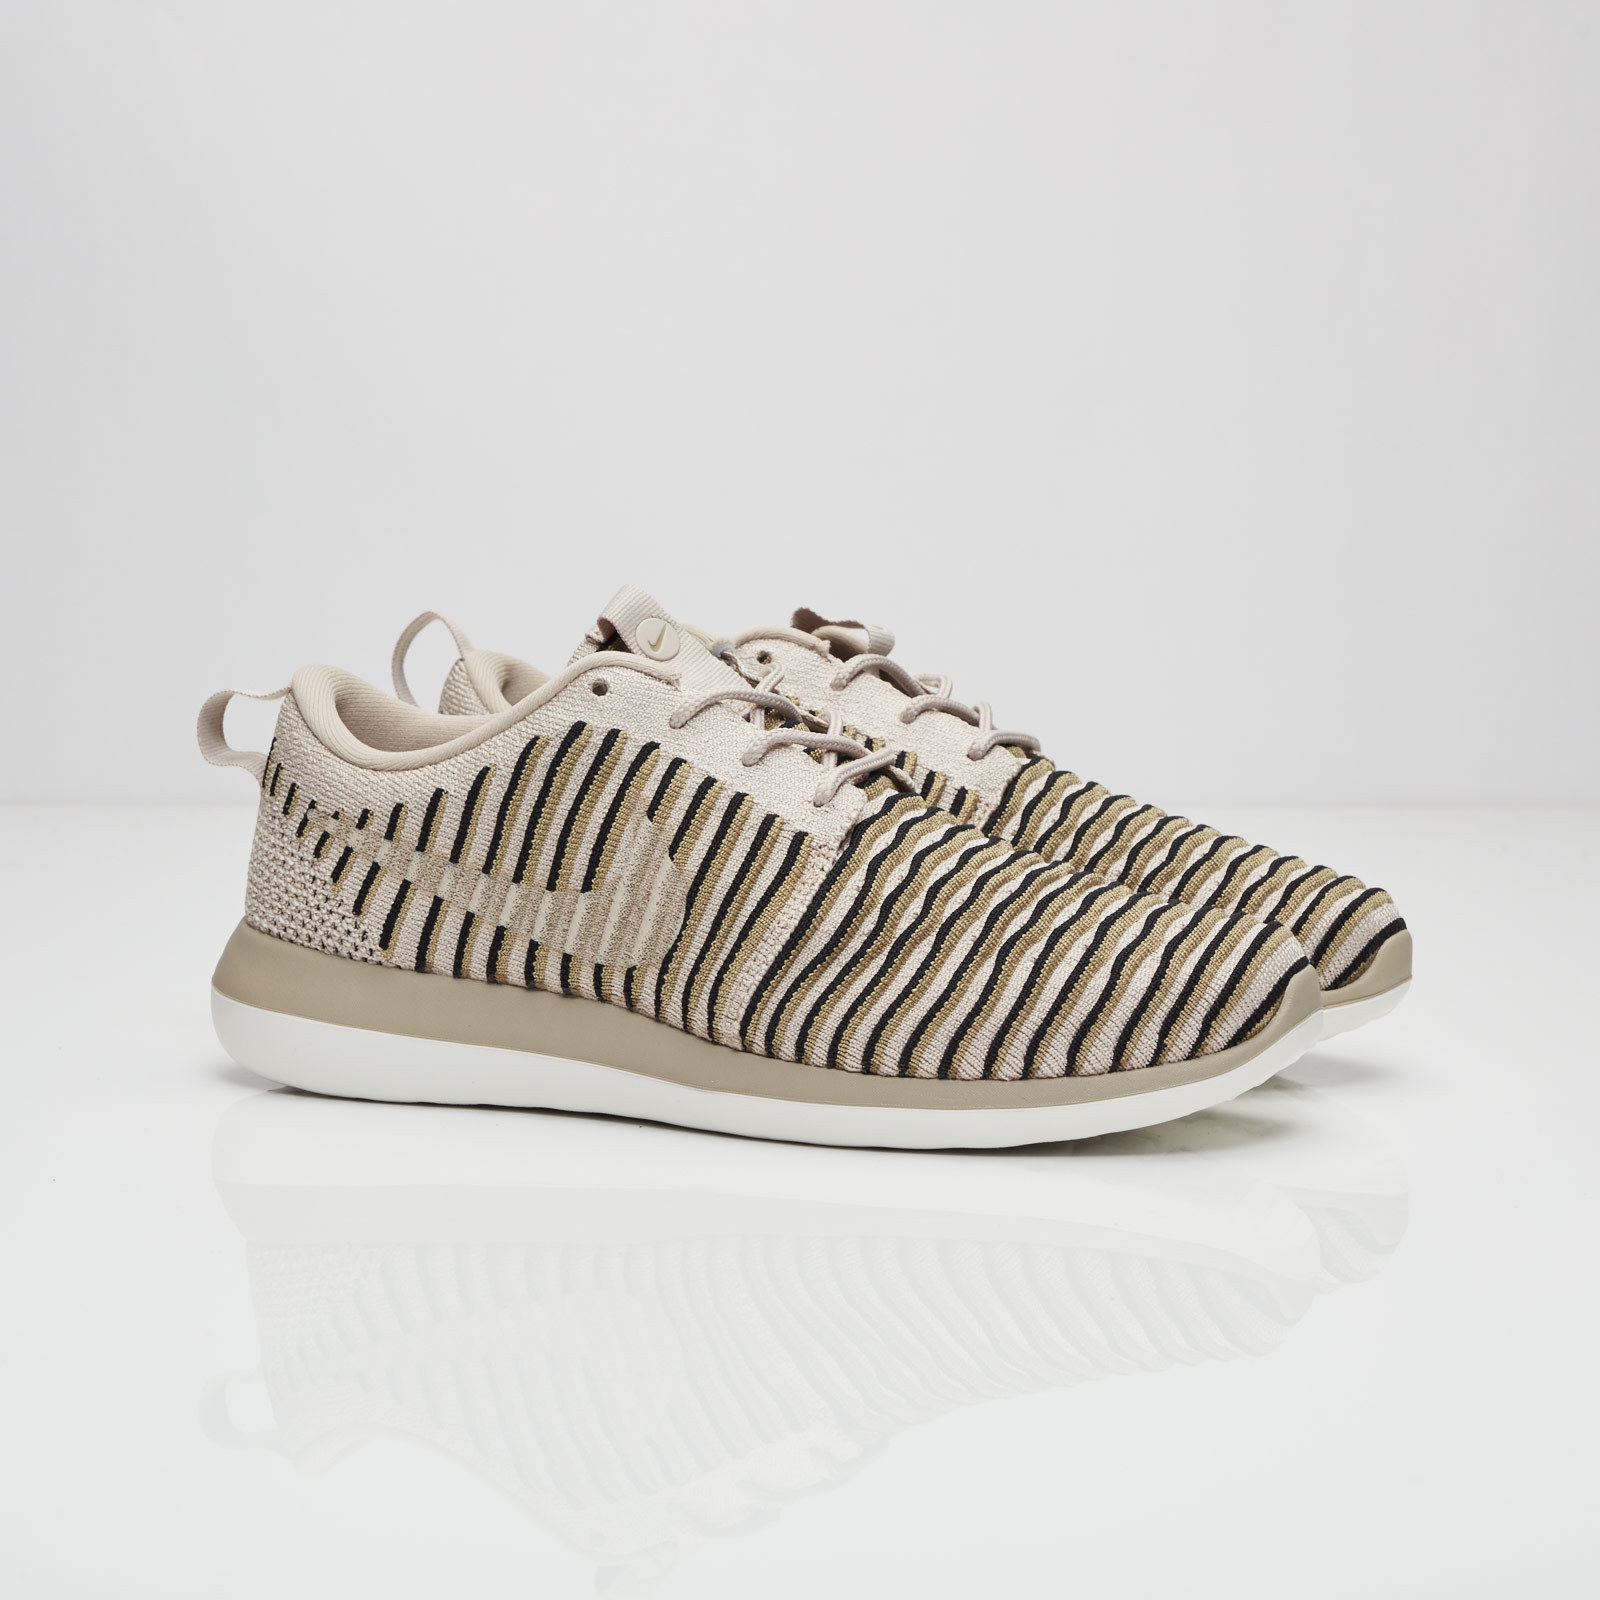 Details about Nike Roshe Two Flyknit 844929 200 Womens Trainers